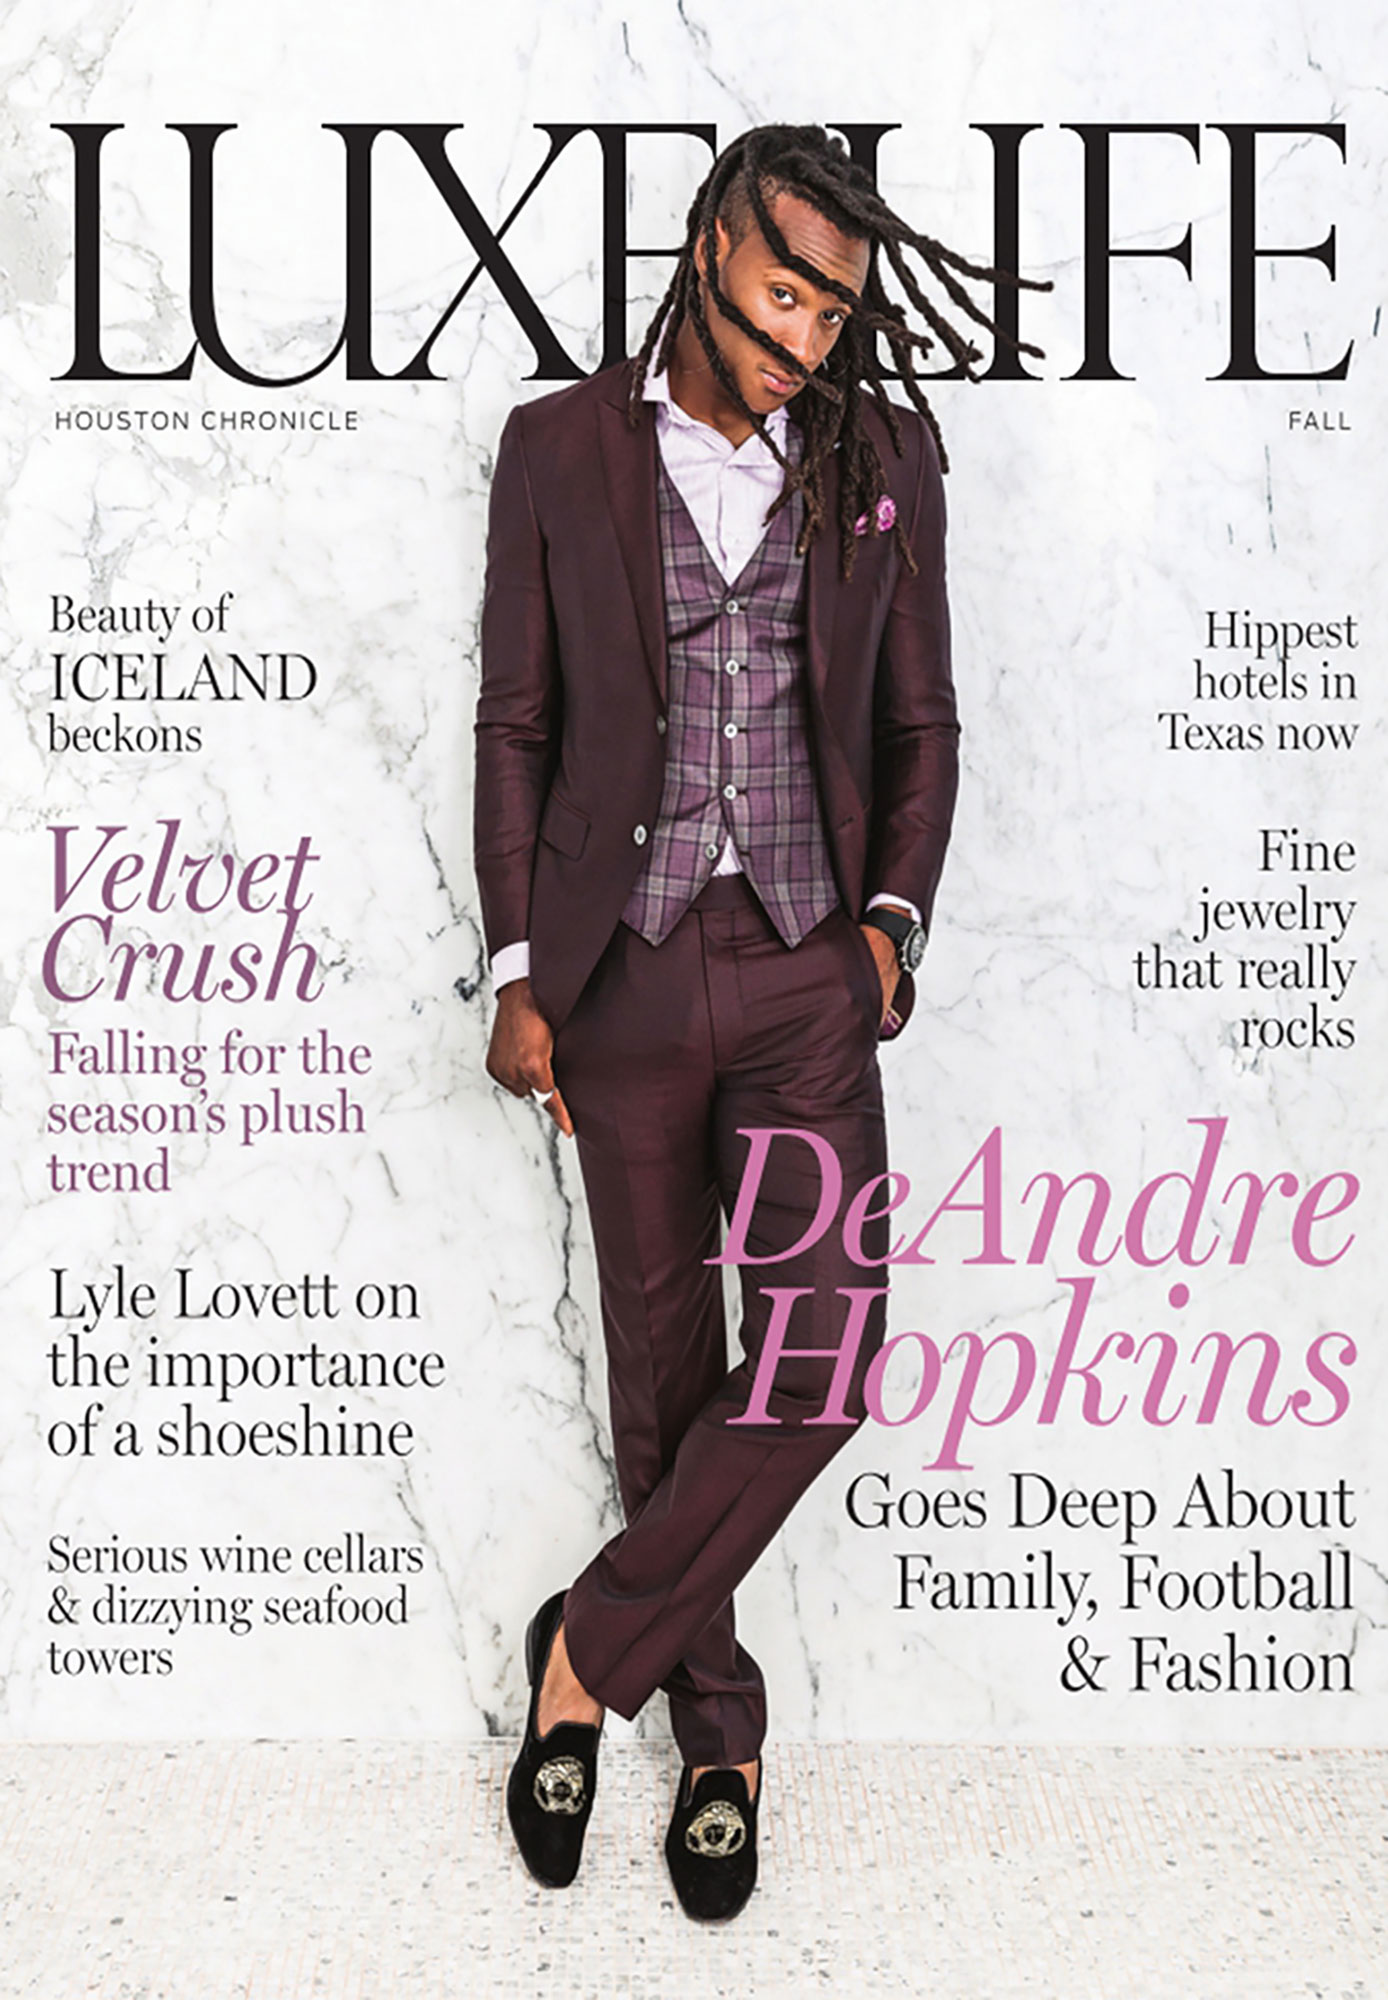 DeAndre Hopkins Luxe Life - Magazine Photography - Julie Soefer Photography